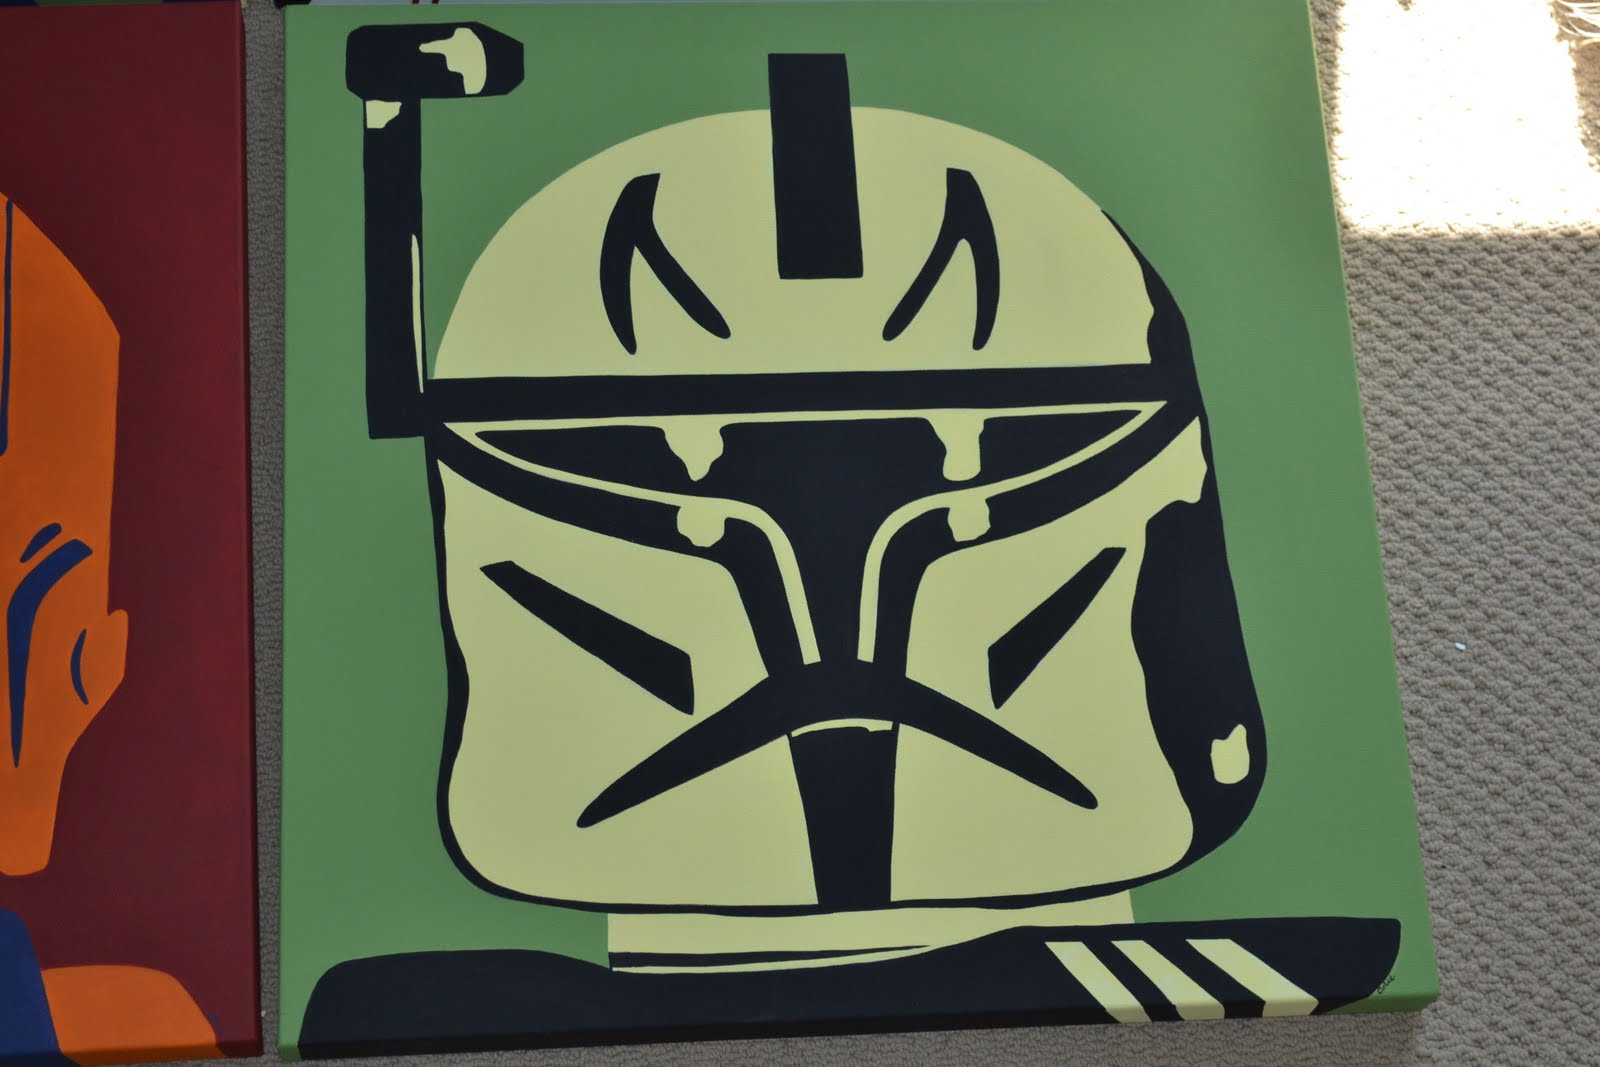 you re art by corie kline star wars legos pop art the bold colors and shapes will look striking against his tan walls so if you re unsure about committing to a wall mural think about what can be created